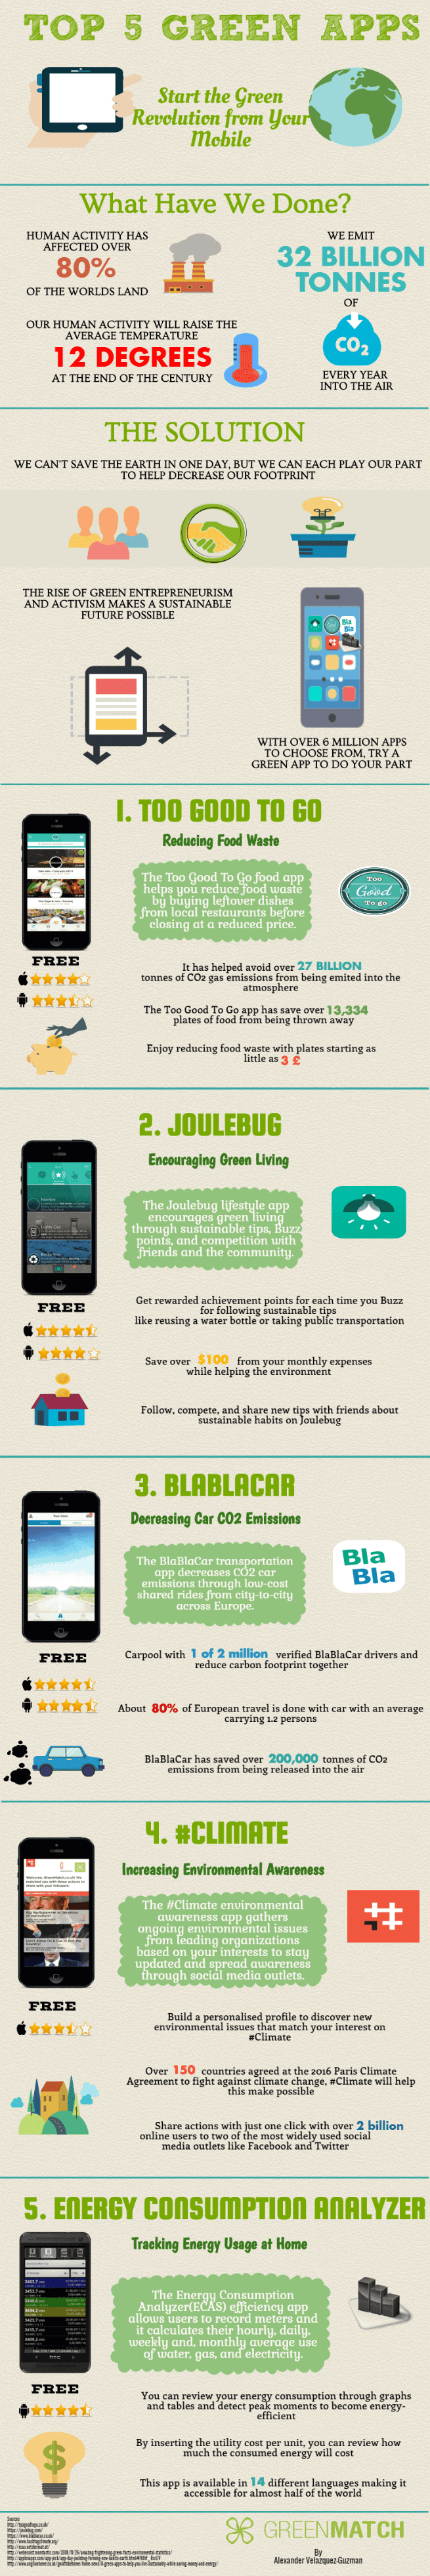 Infographic about top 5 green apps